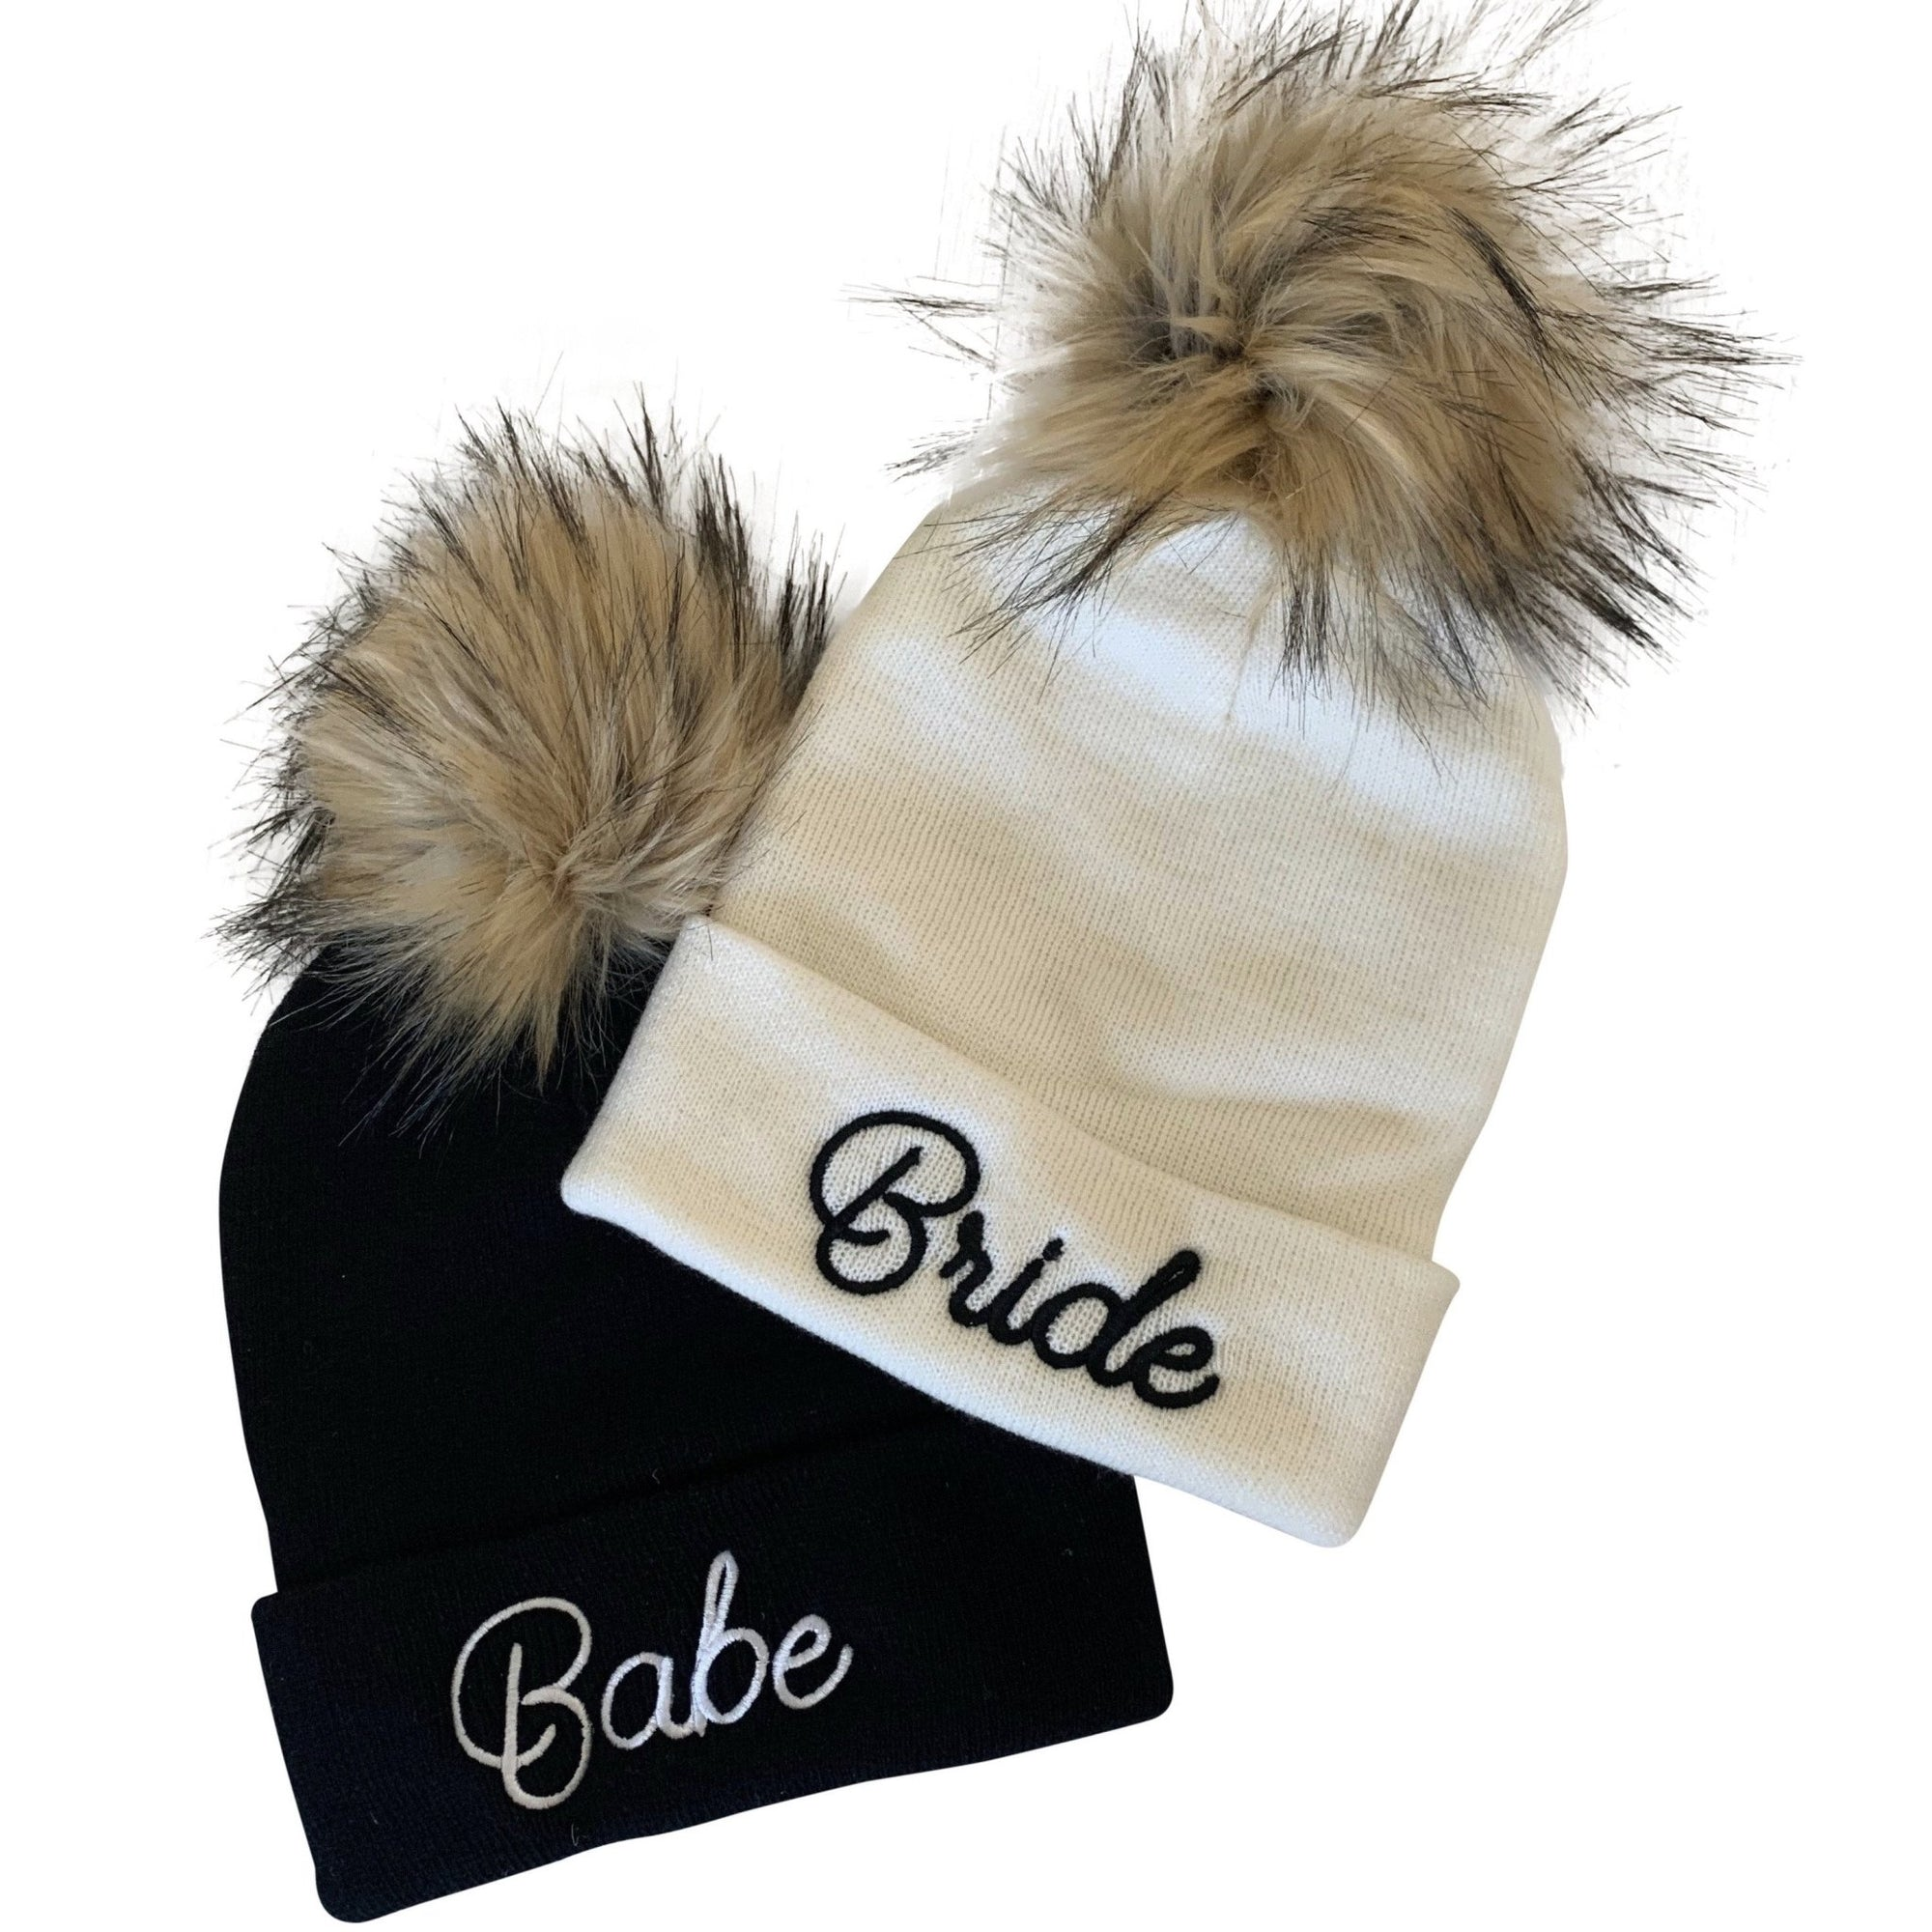 Bride & Babe Beanie - Sprinkled With Pink #bachelorette #custom #gifts